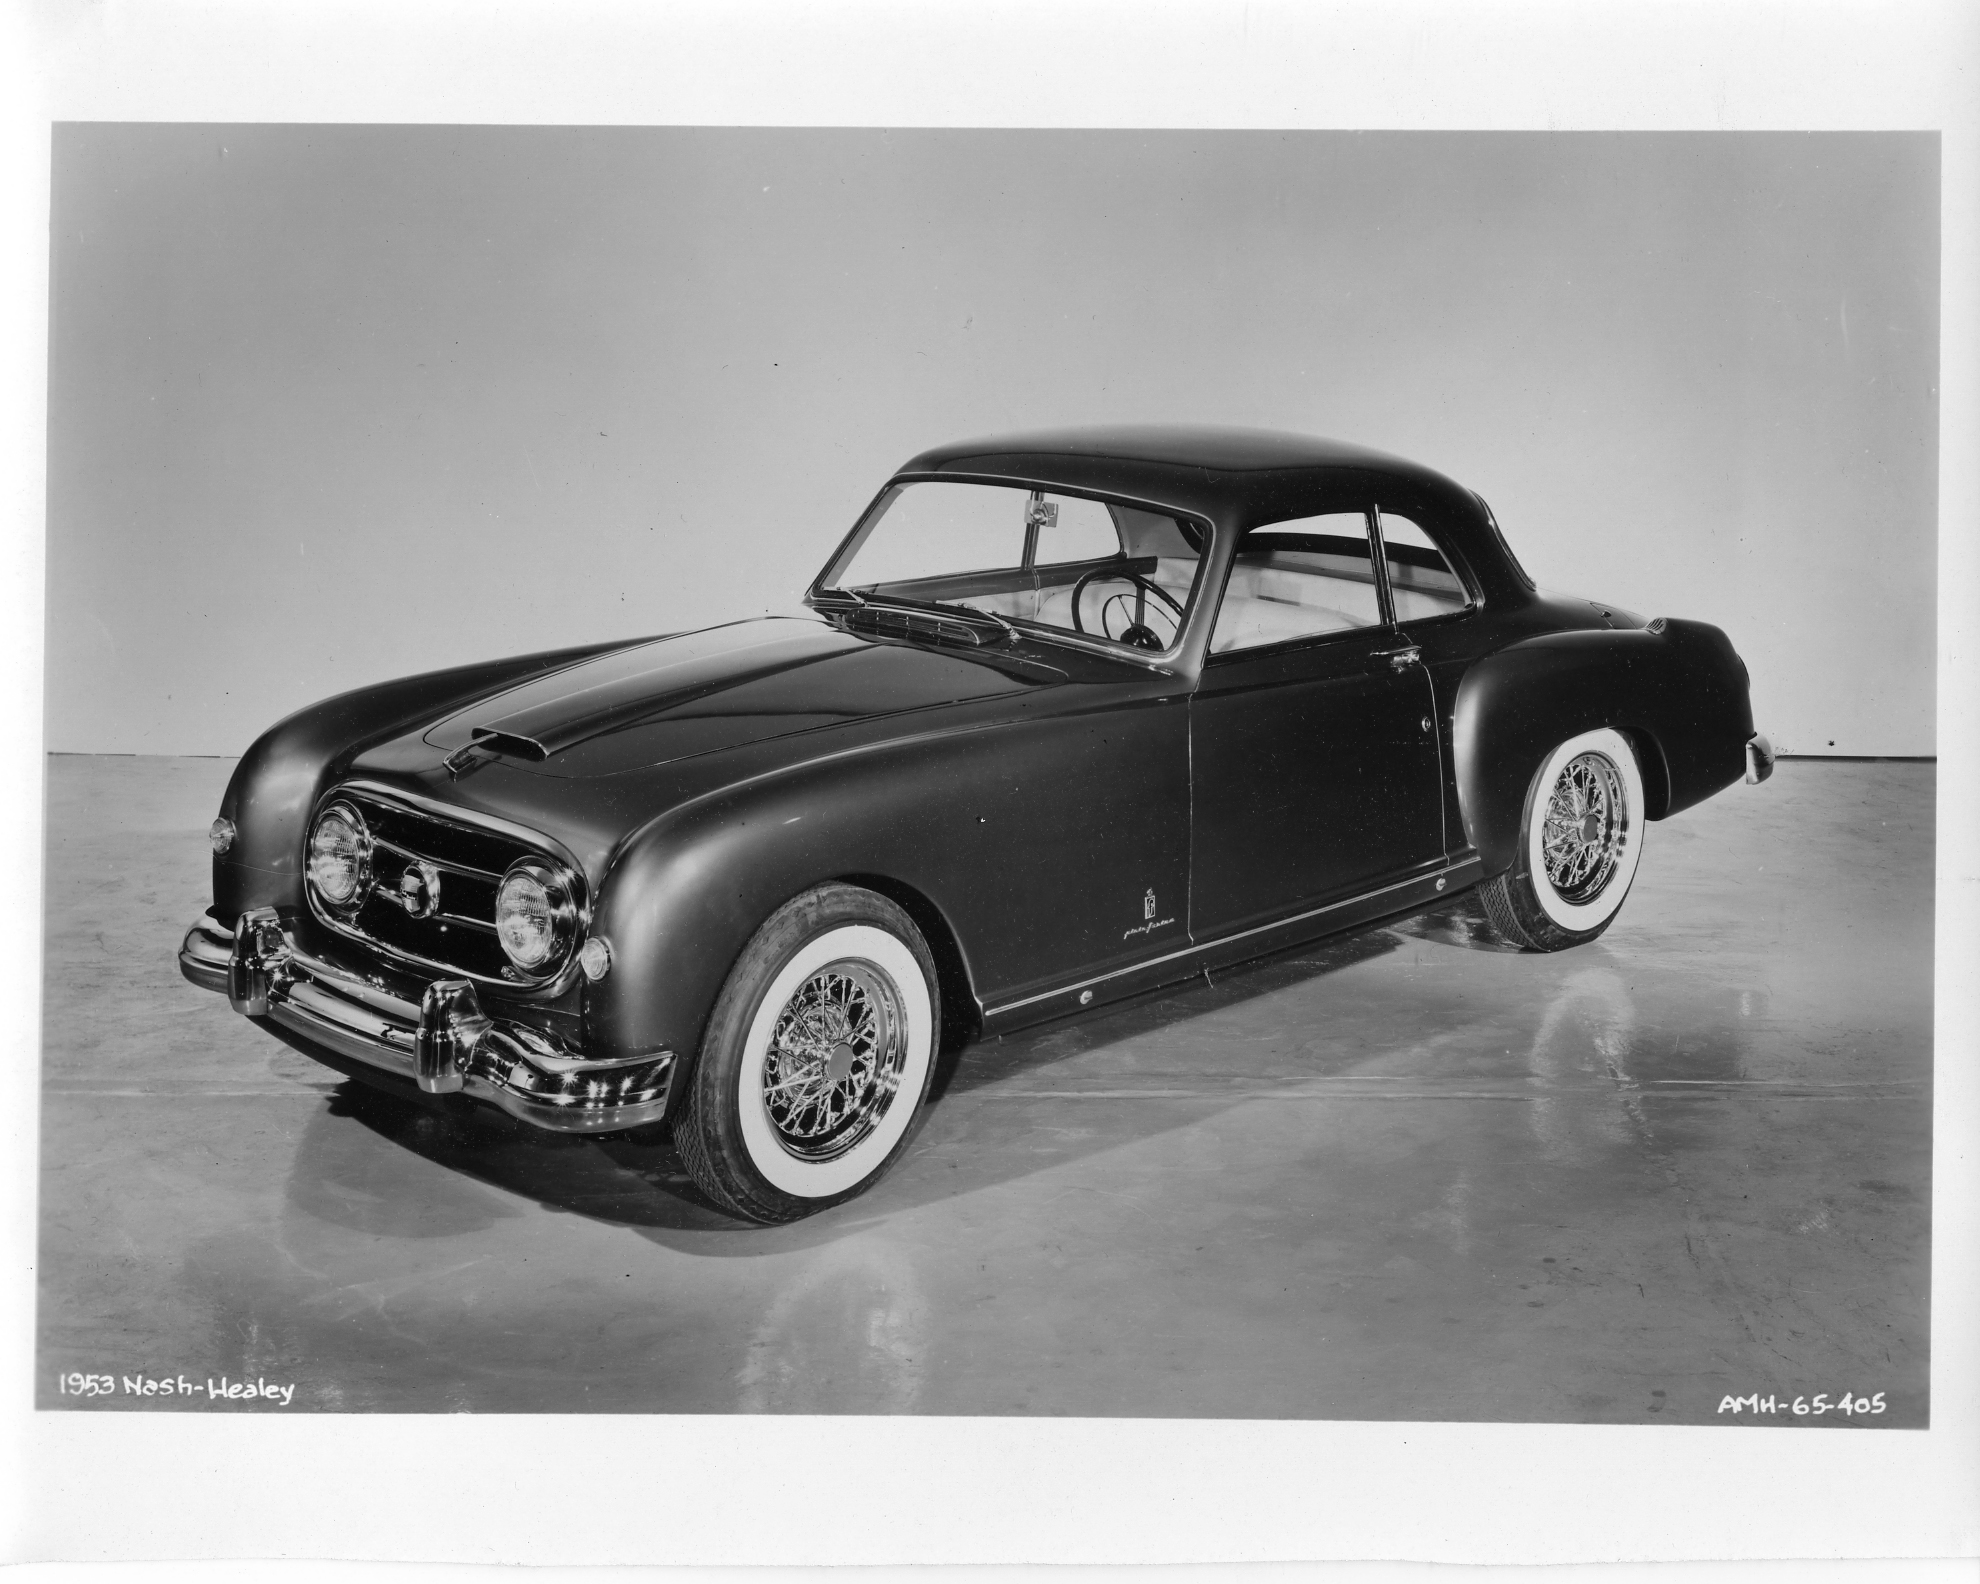 Nash Healey Restoration Documents And Manuals